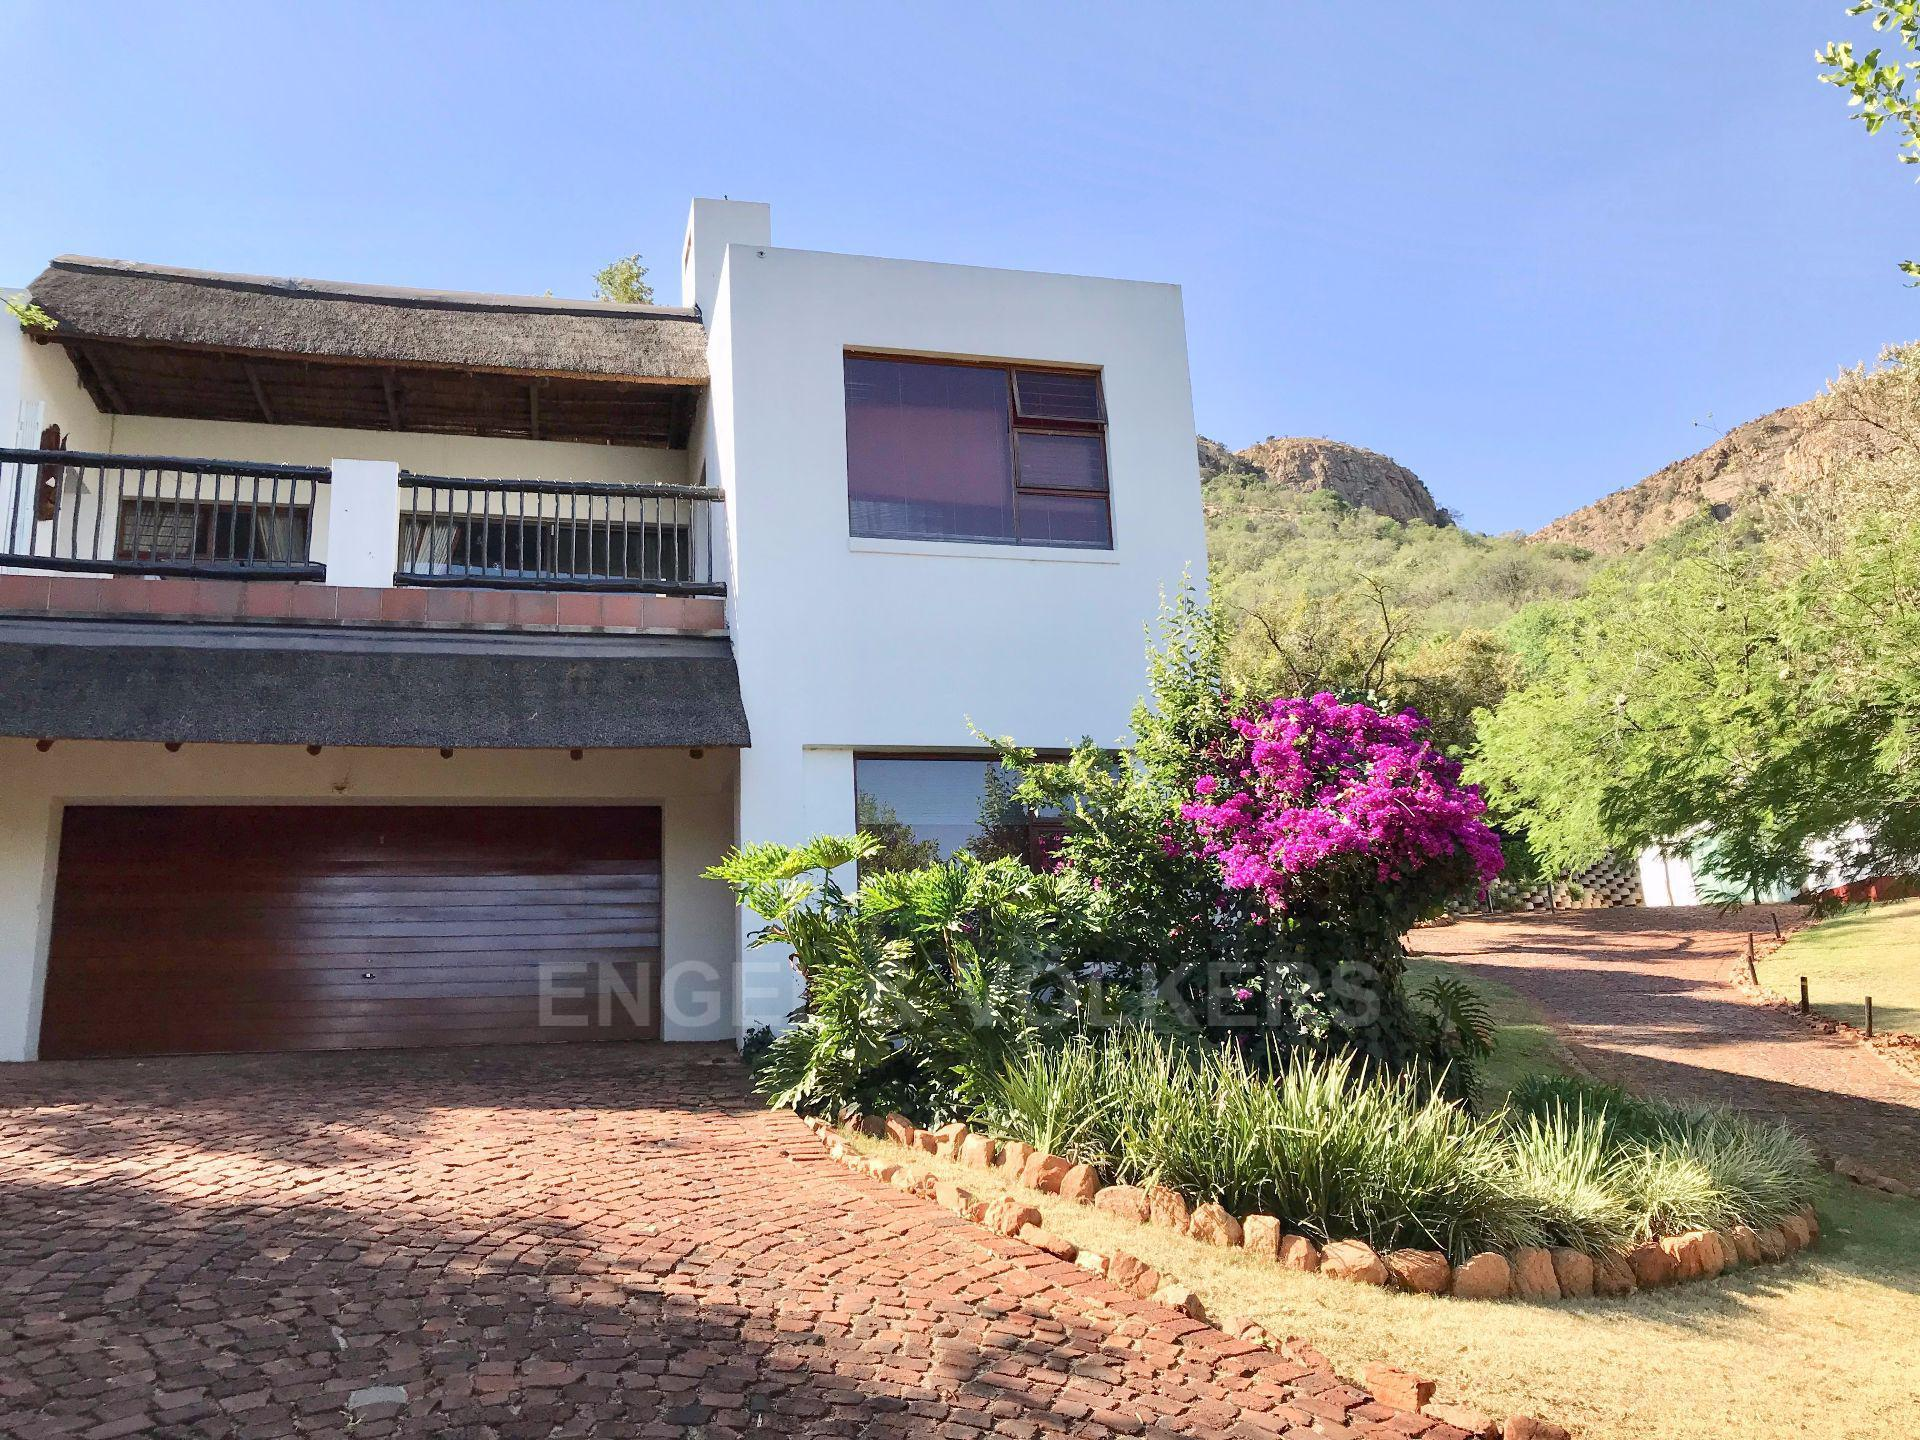 House in Mount Kos - This home is set high in the estate with the Magaliesberg as a backdrop